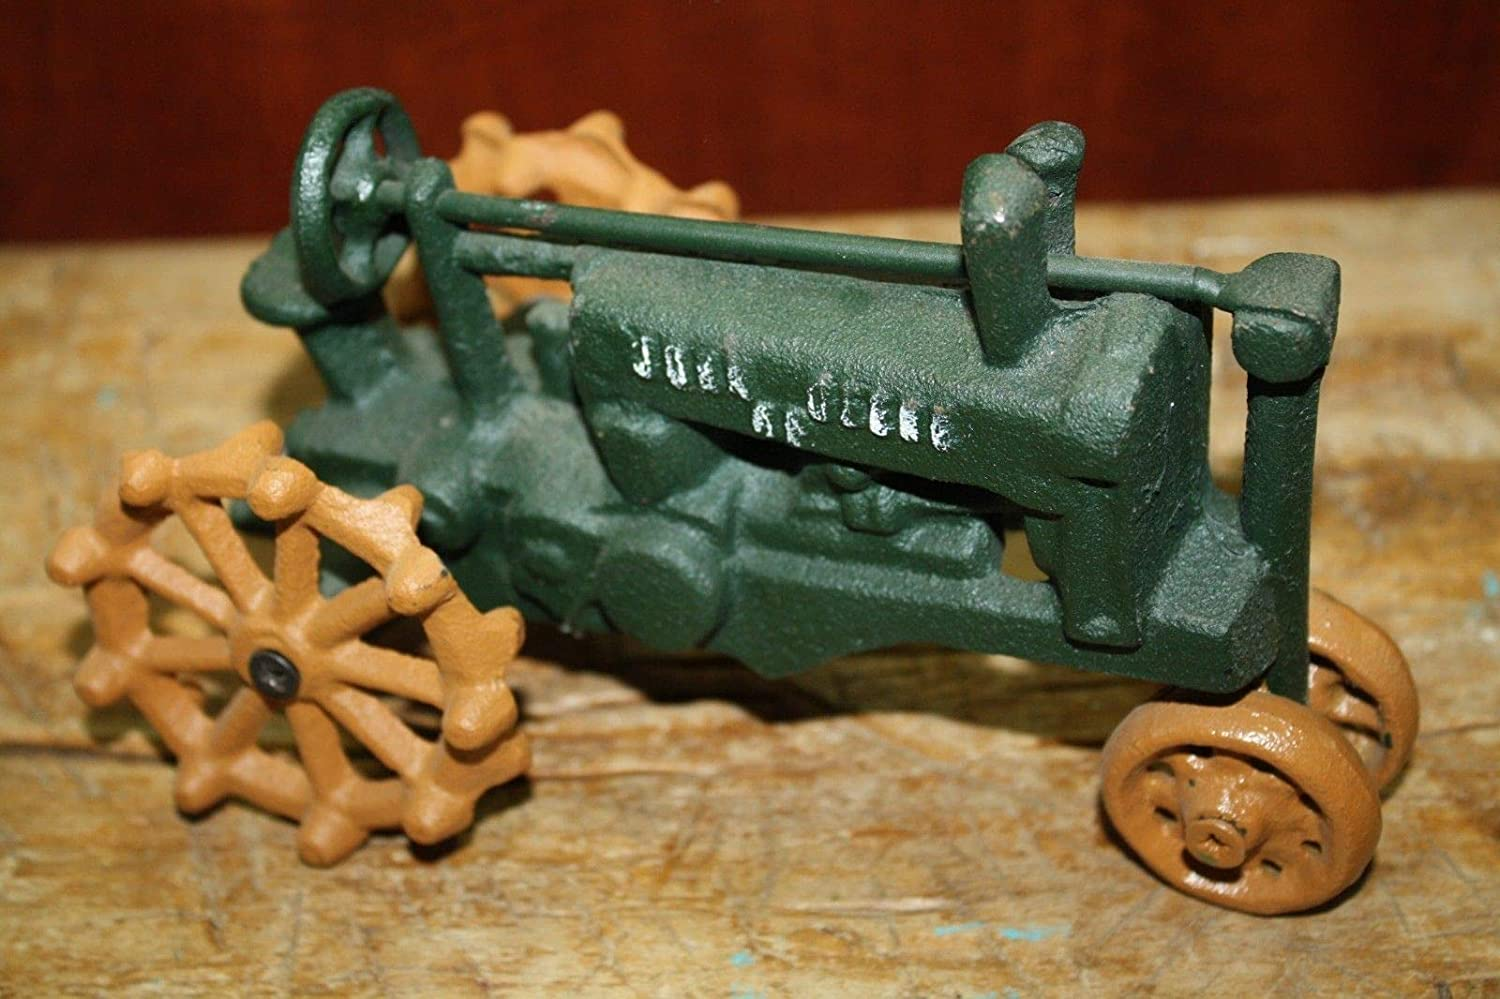 John Deere Home Decor.Amazon Com Was Manufactured To Look Antique Antique Style